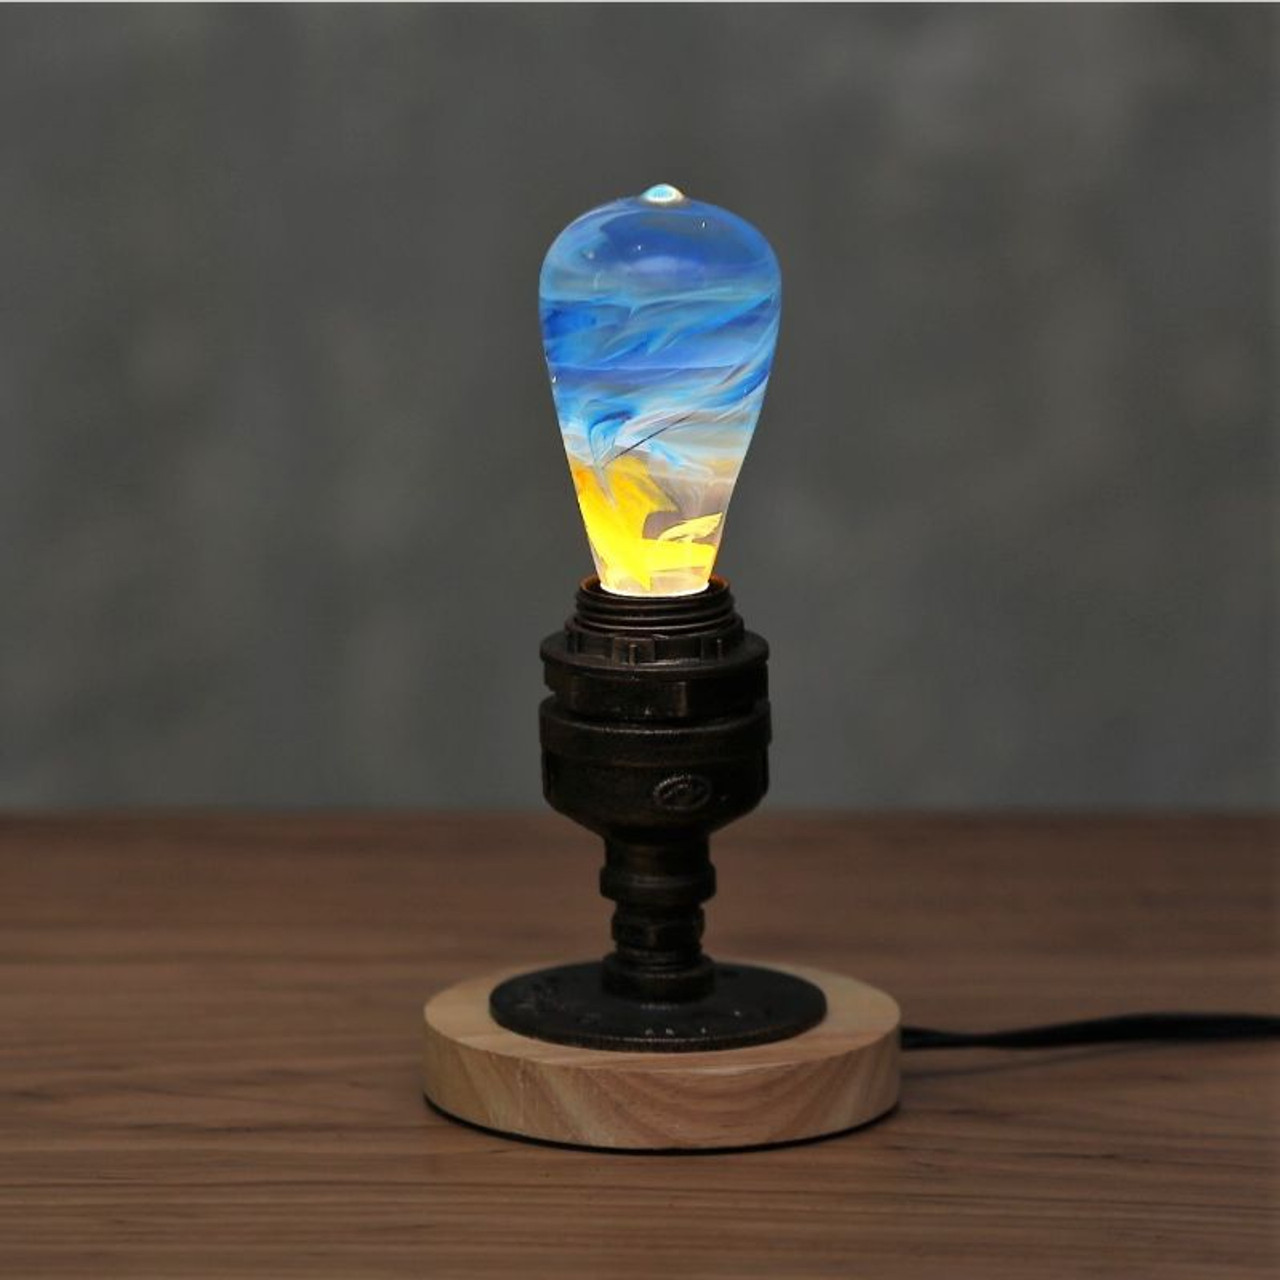 EP Light Fire Yellow and Blue Bulb Art Fixture Lamp with Optional Modern or Vintage Base Stand